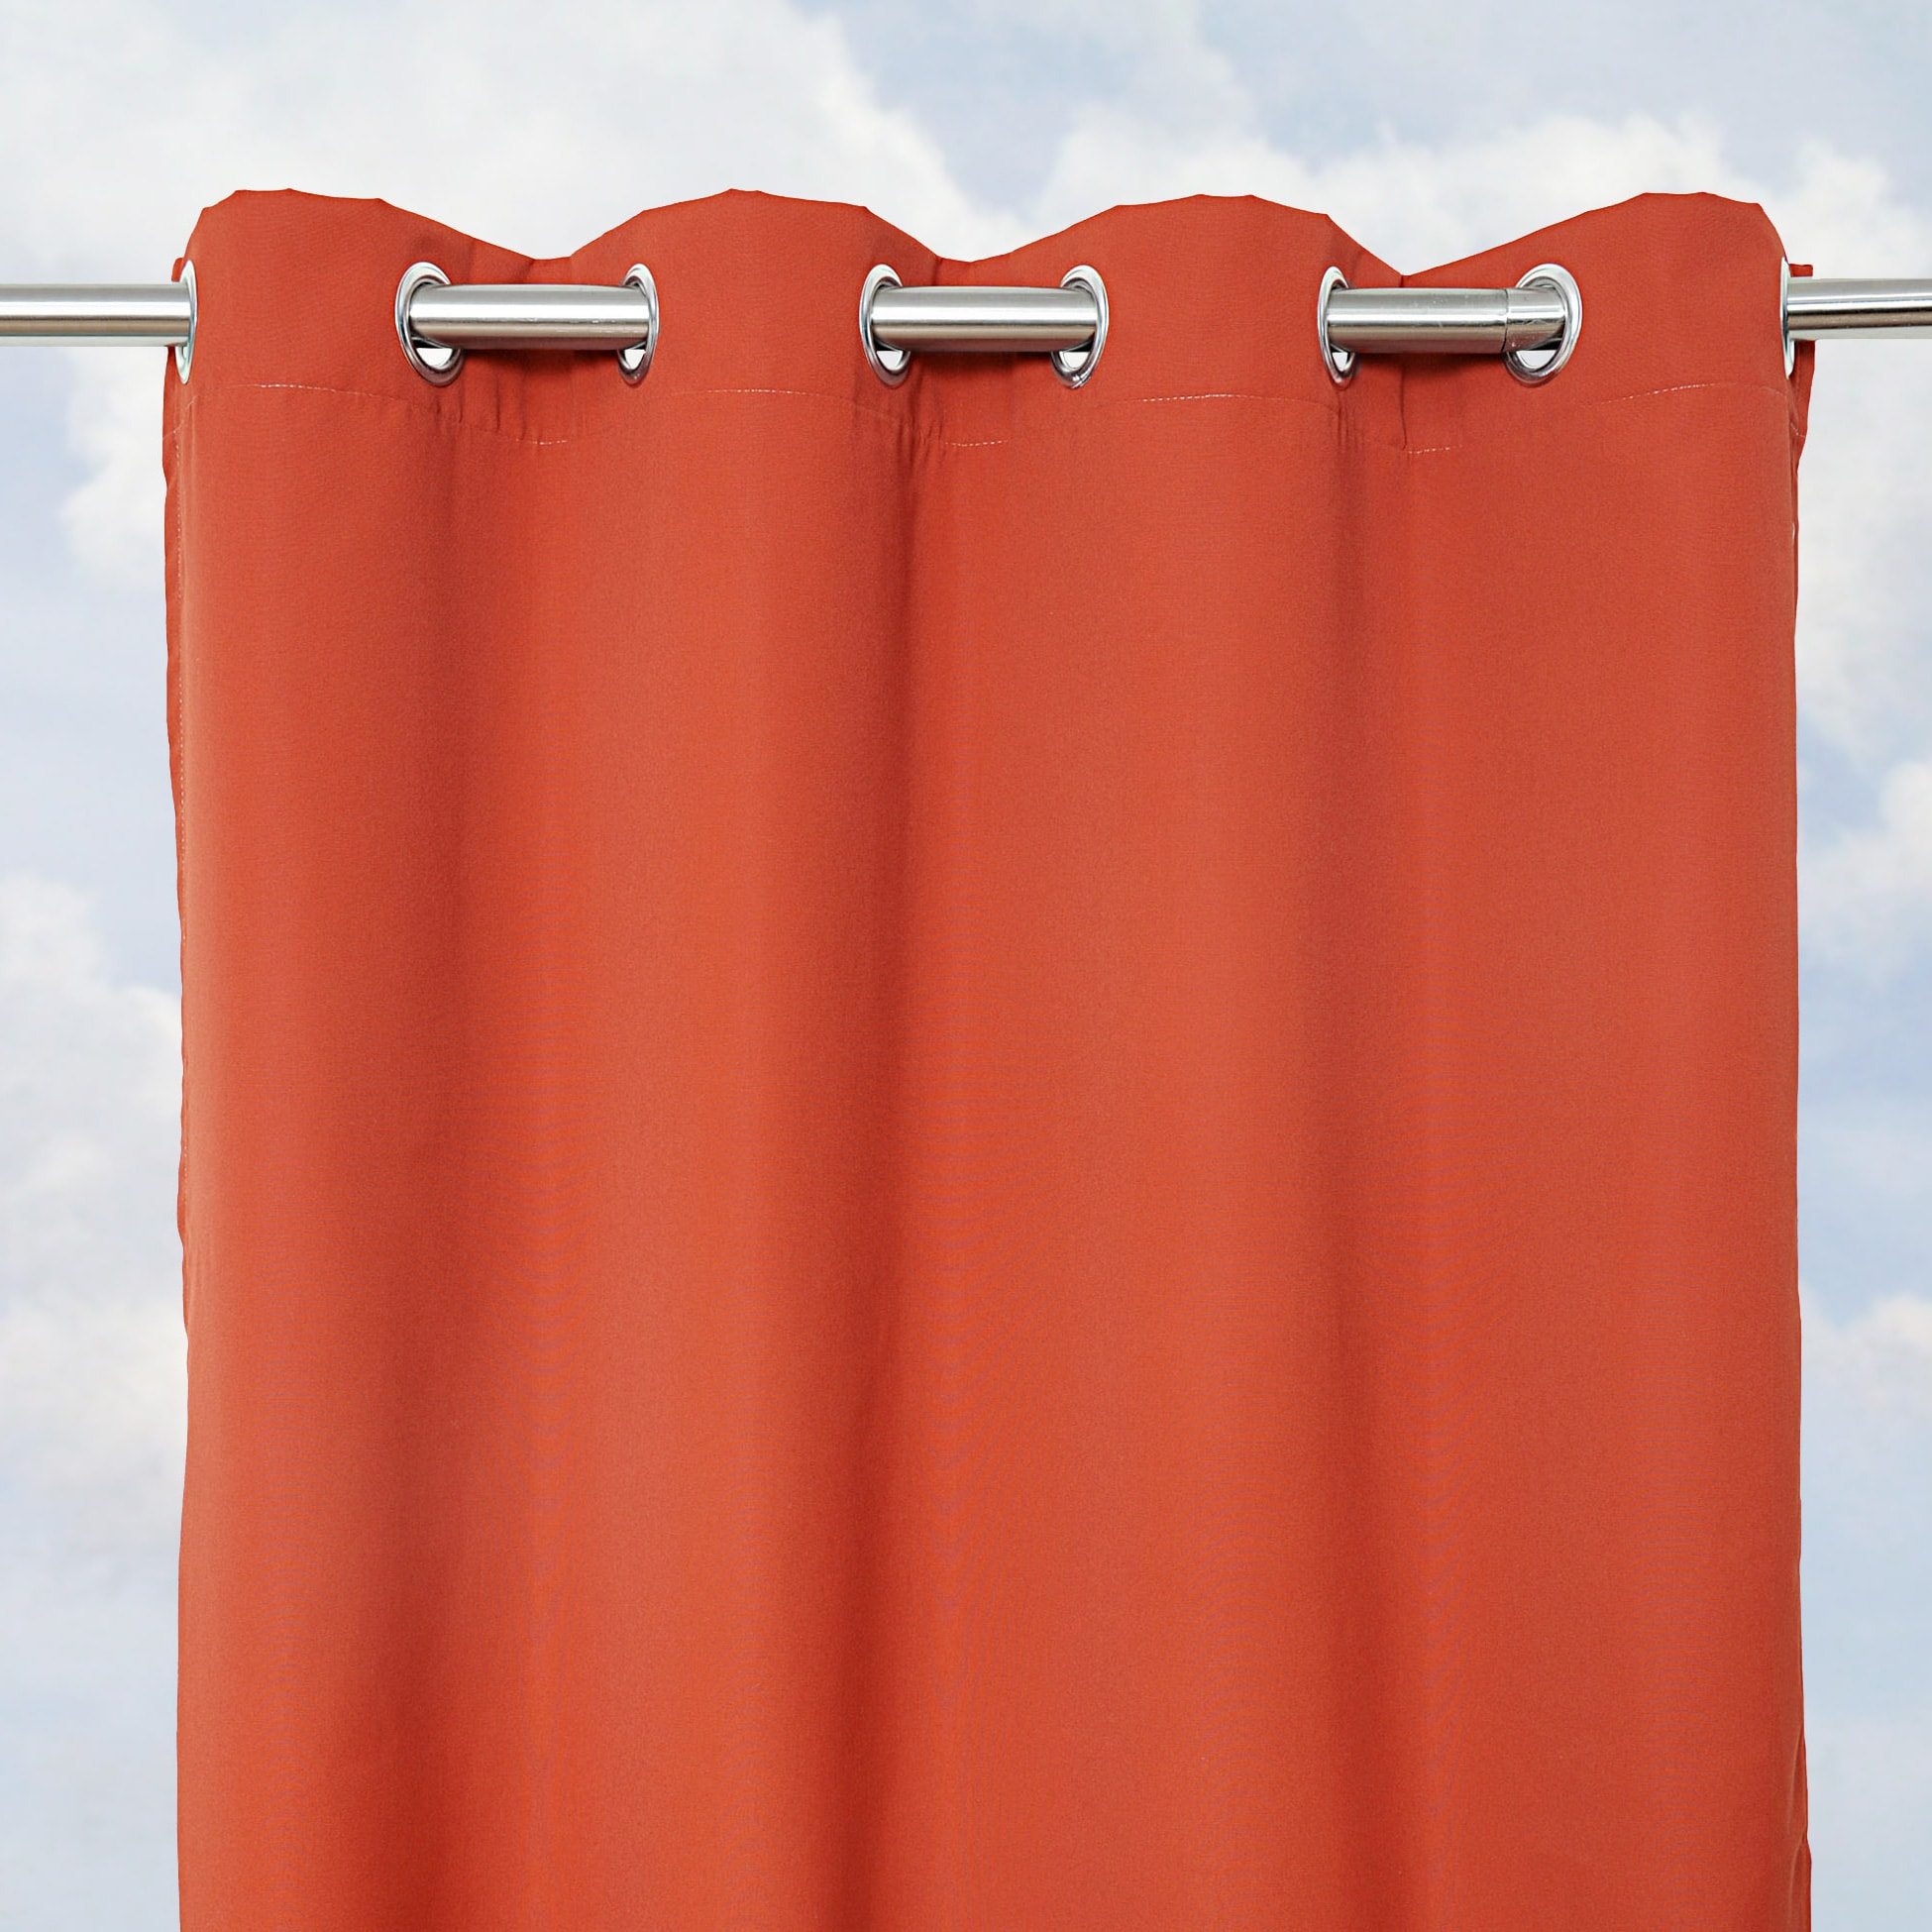 Sunbrella Bay View Terracotta 84-inch Outdoor Curtain Panel